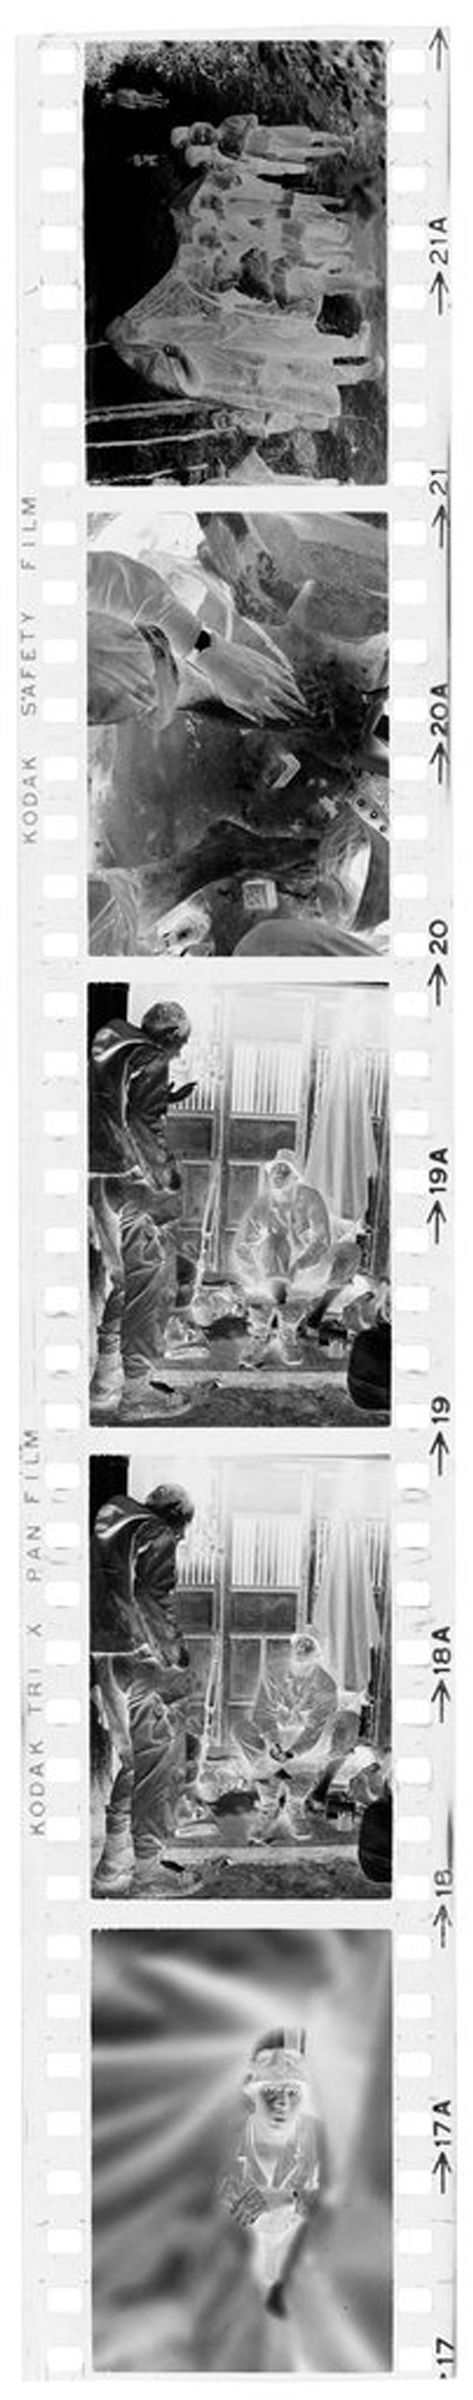 Untitled (Soldier Seated Outside Building Resting Feet; Soldier With Vietnamese Children, Vietnam)